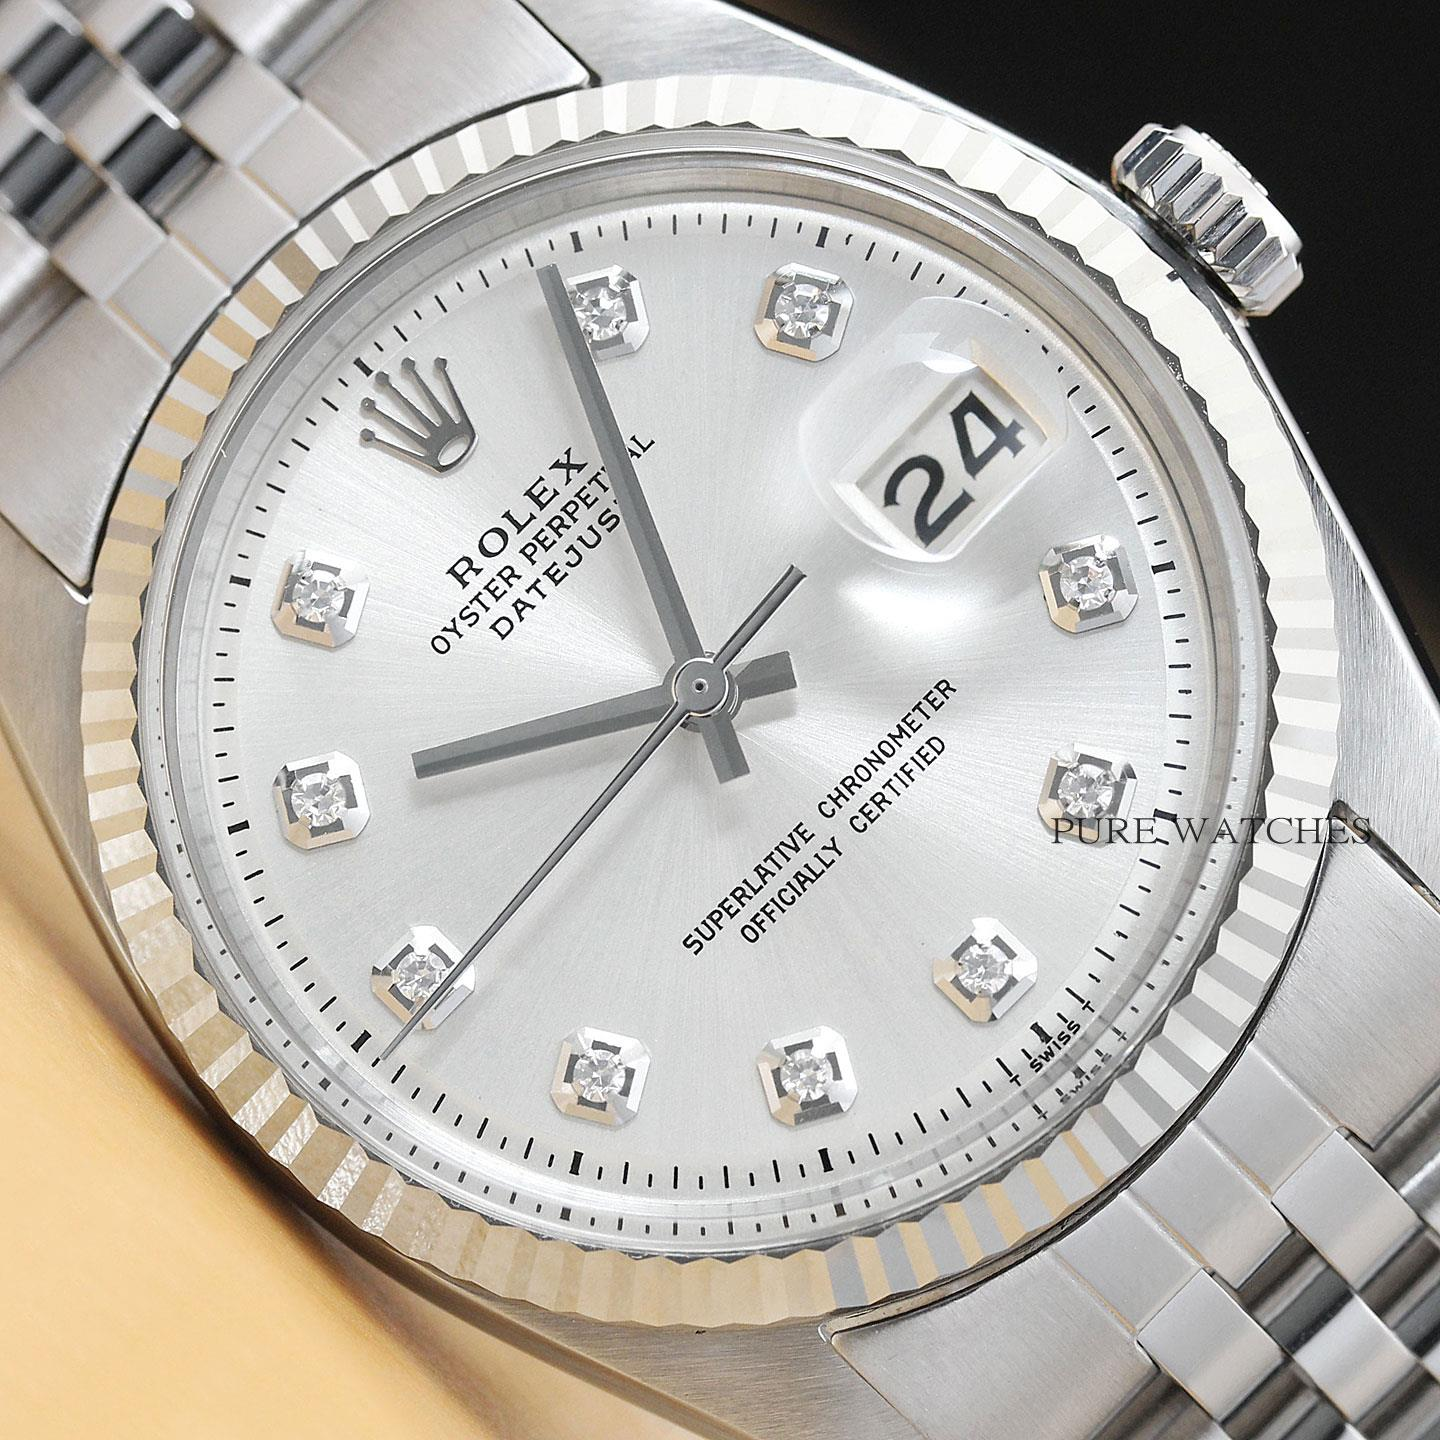 3e741afb64e90 Details about MENS ROLEX DATEJUST 18K WHITE GOLD & STAINLESS STEEL SILVER  DIAMOND DIAL WATCH